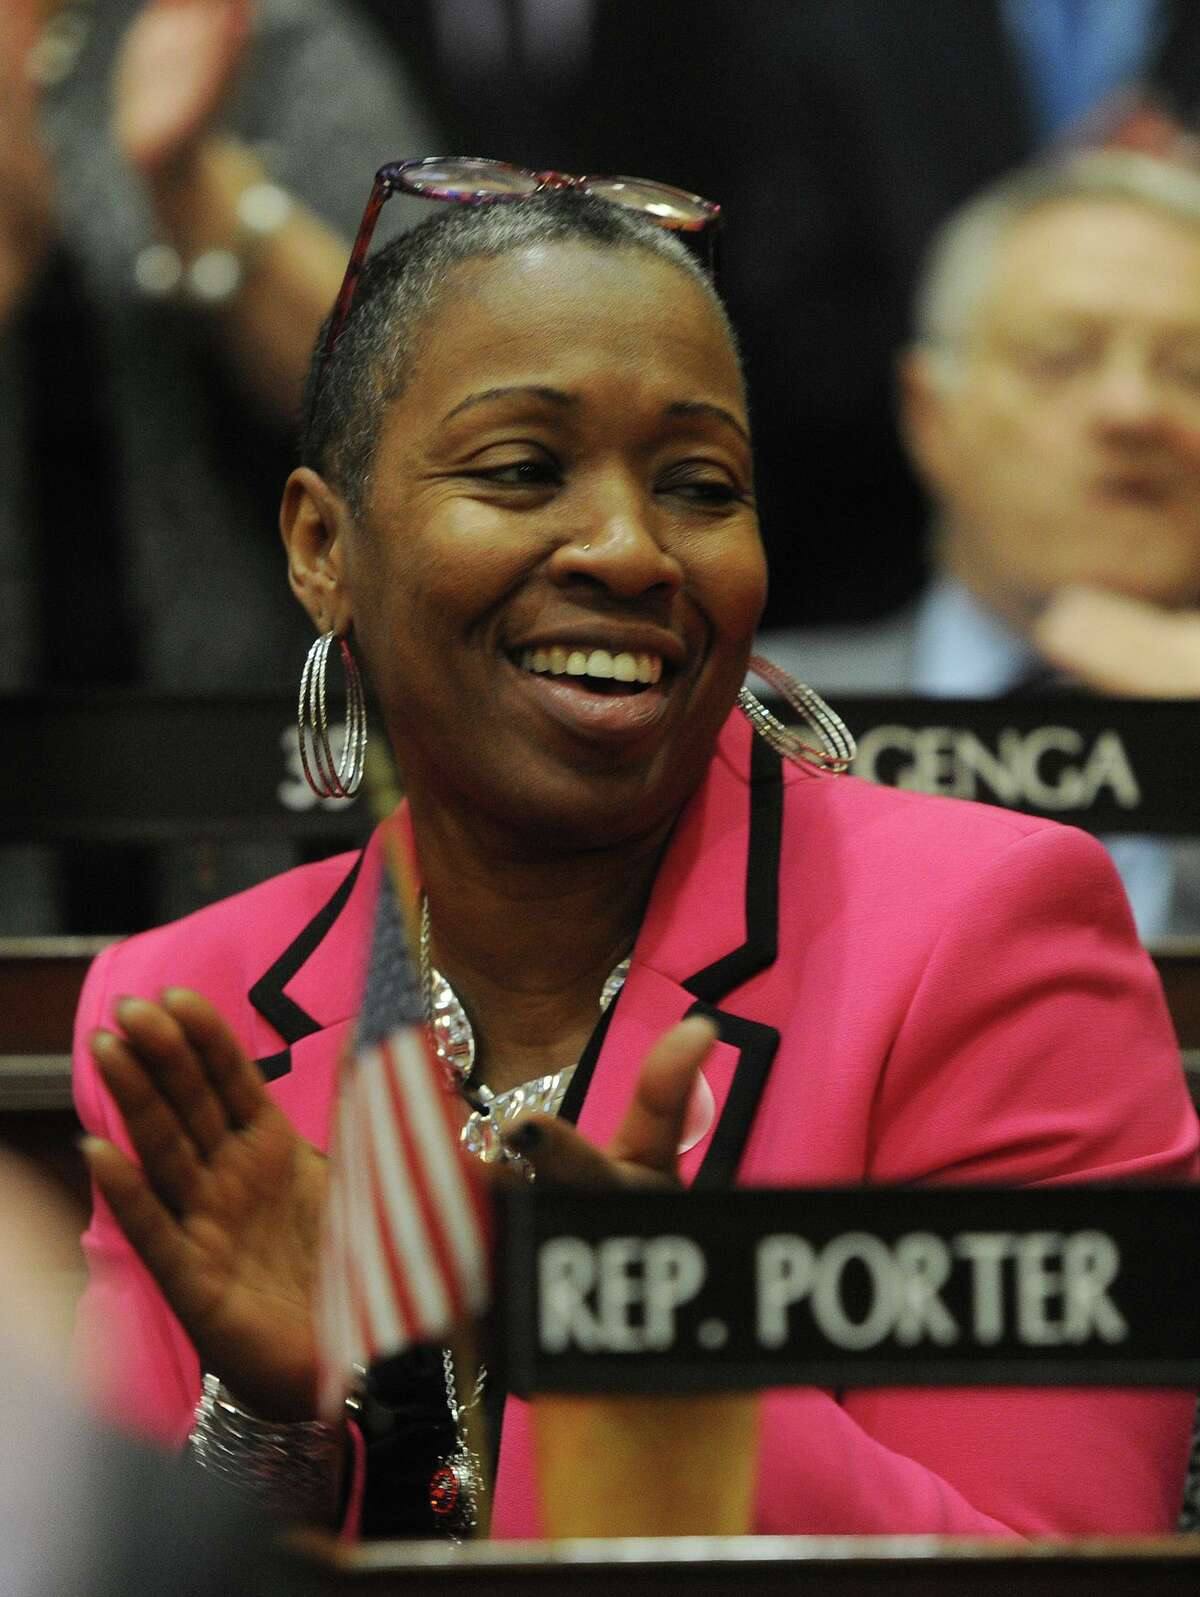 State Rep. Robyn Porter, D-New Haven